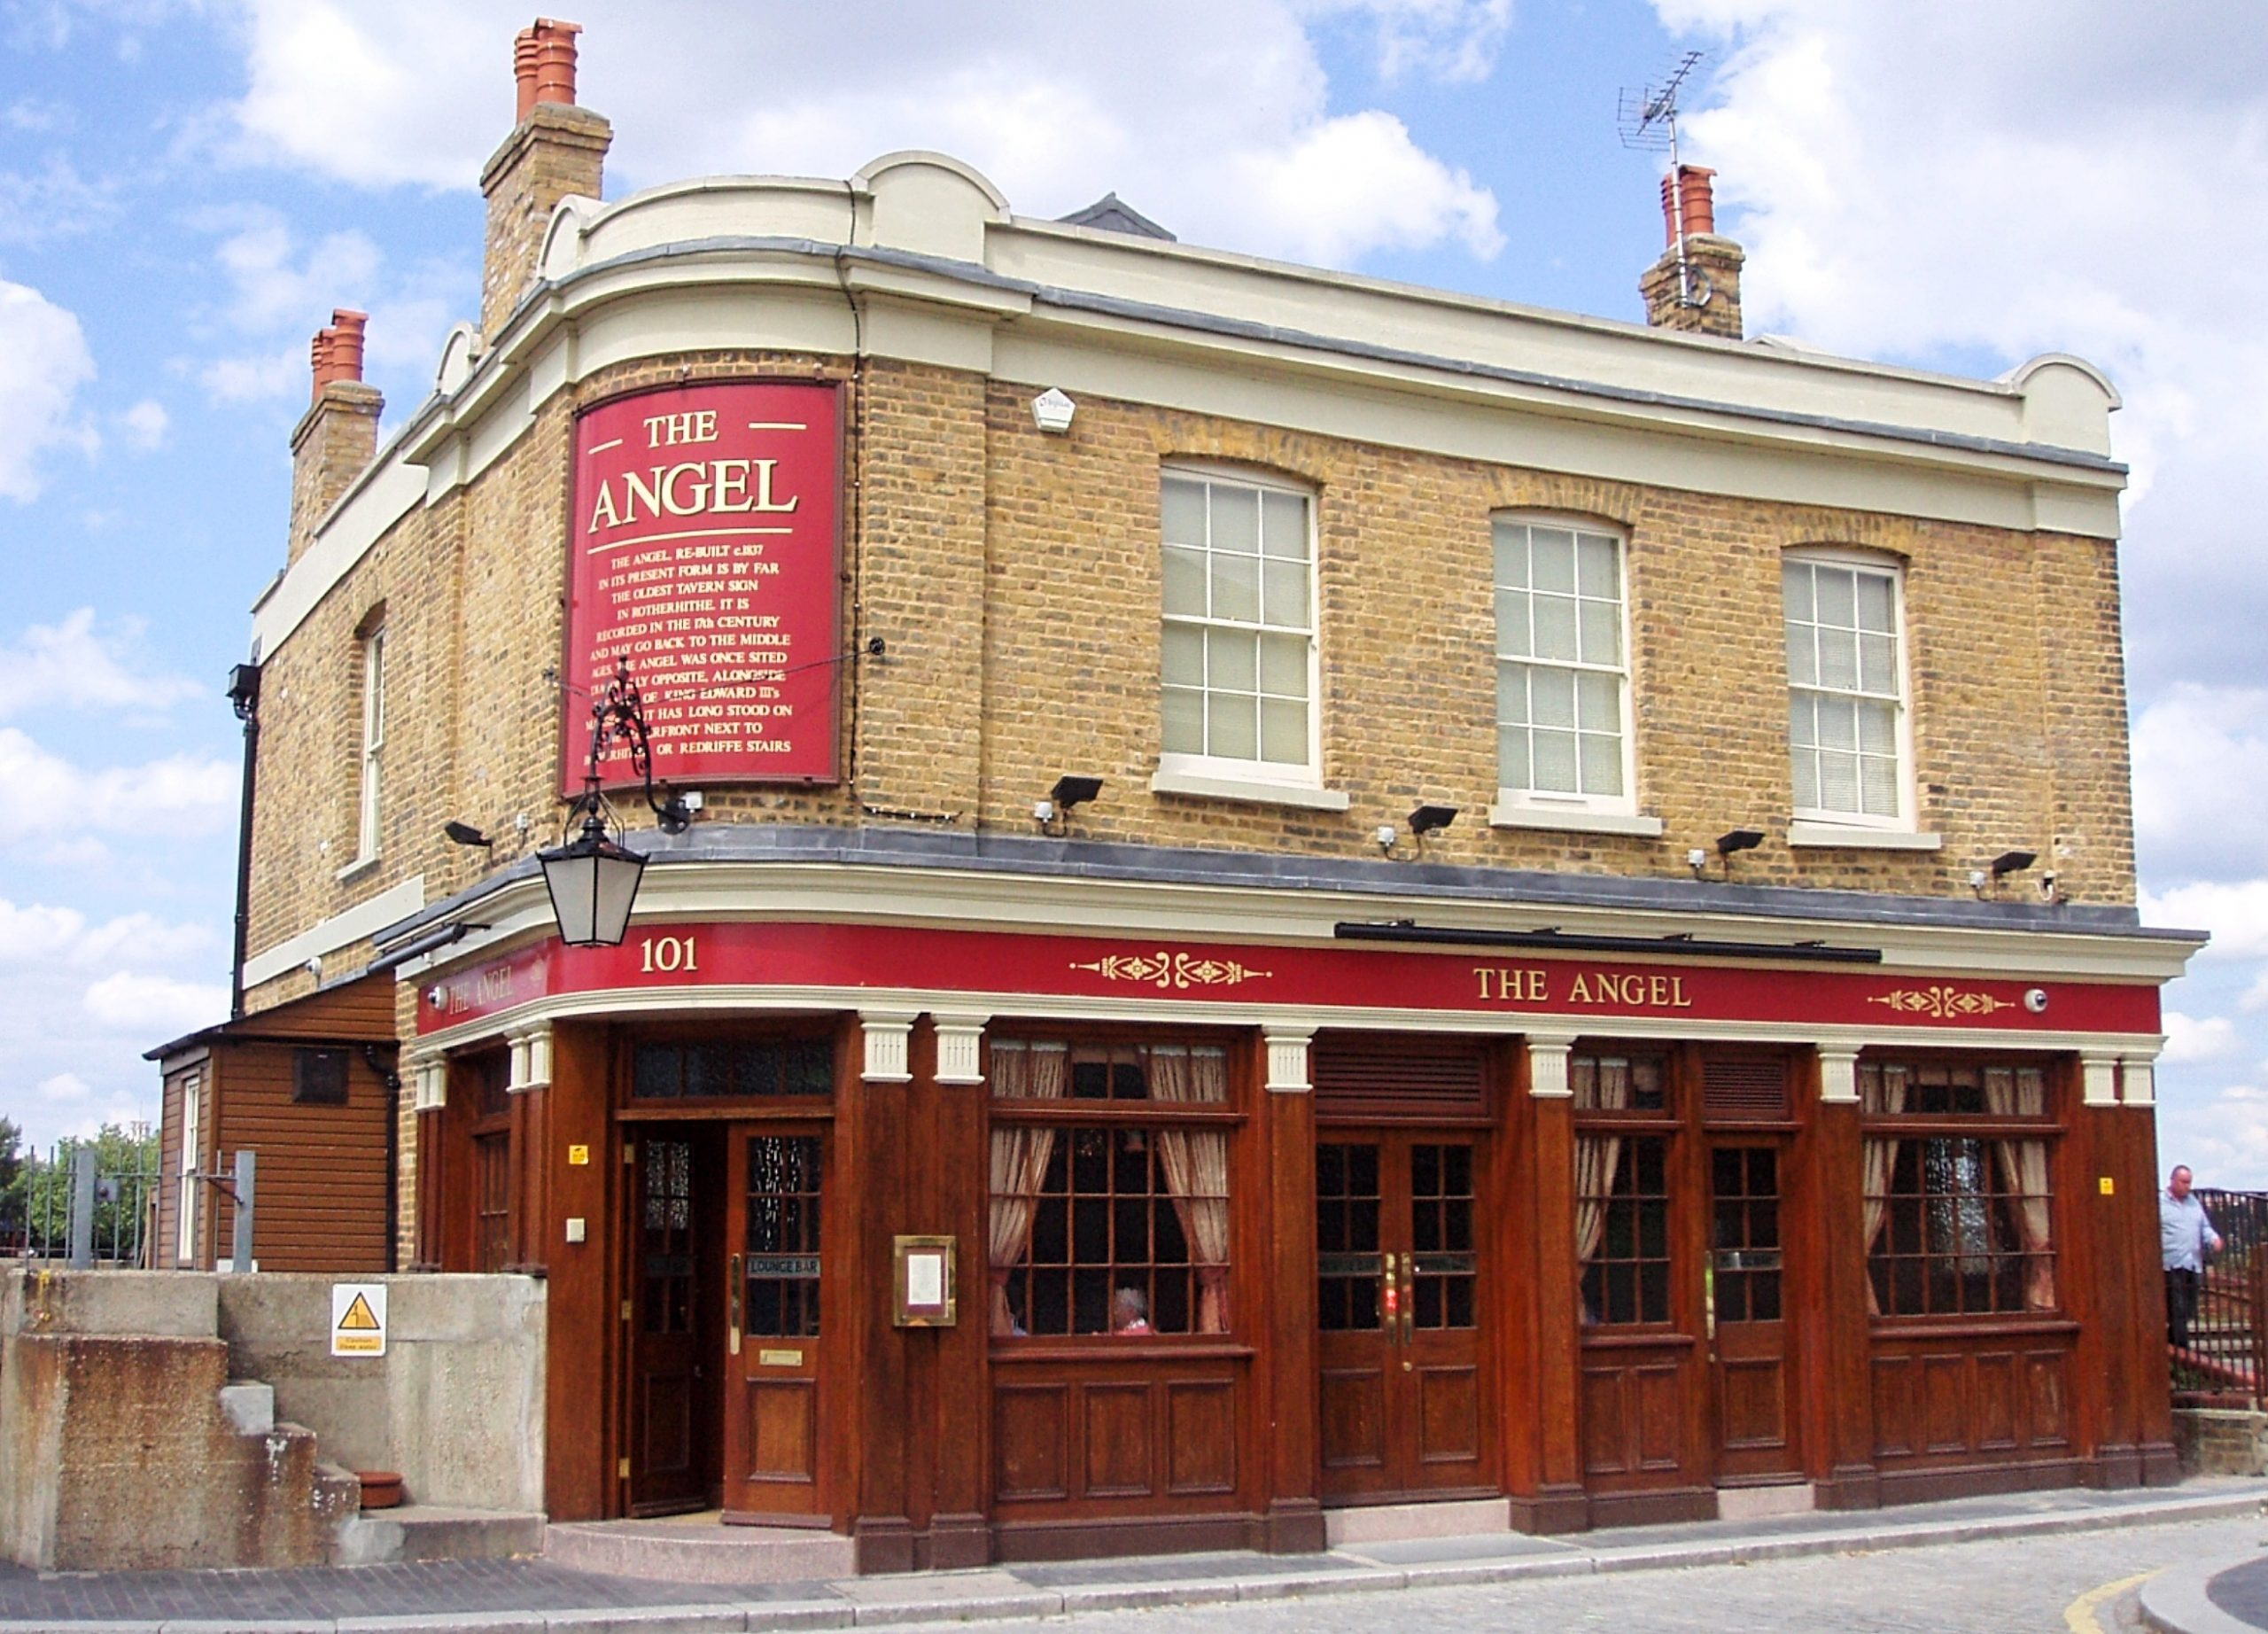 London Pub: The Angel, Rotherhithe. Image copyright: Ewan Munro via Flickr